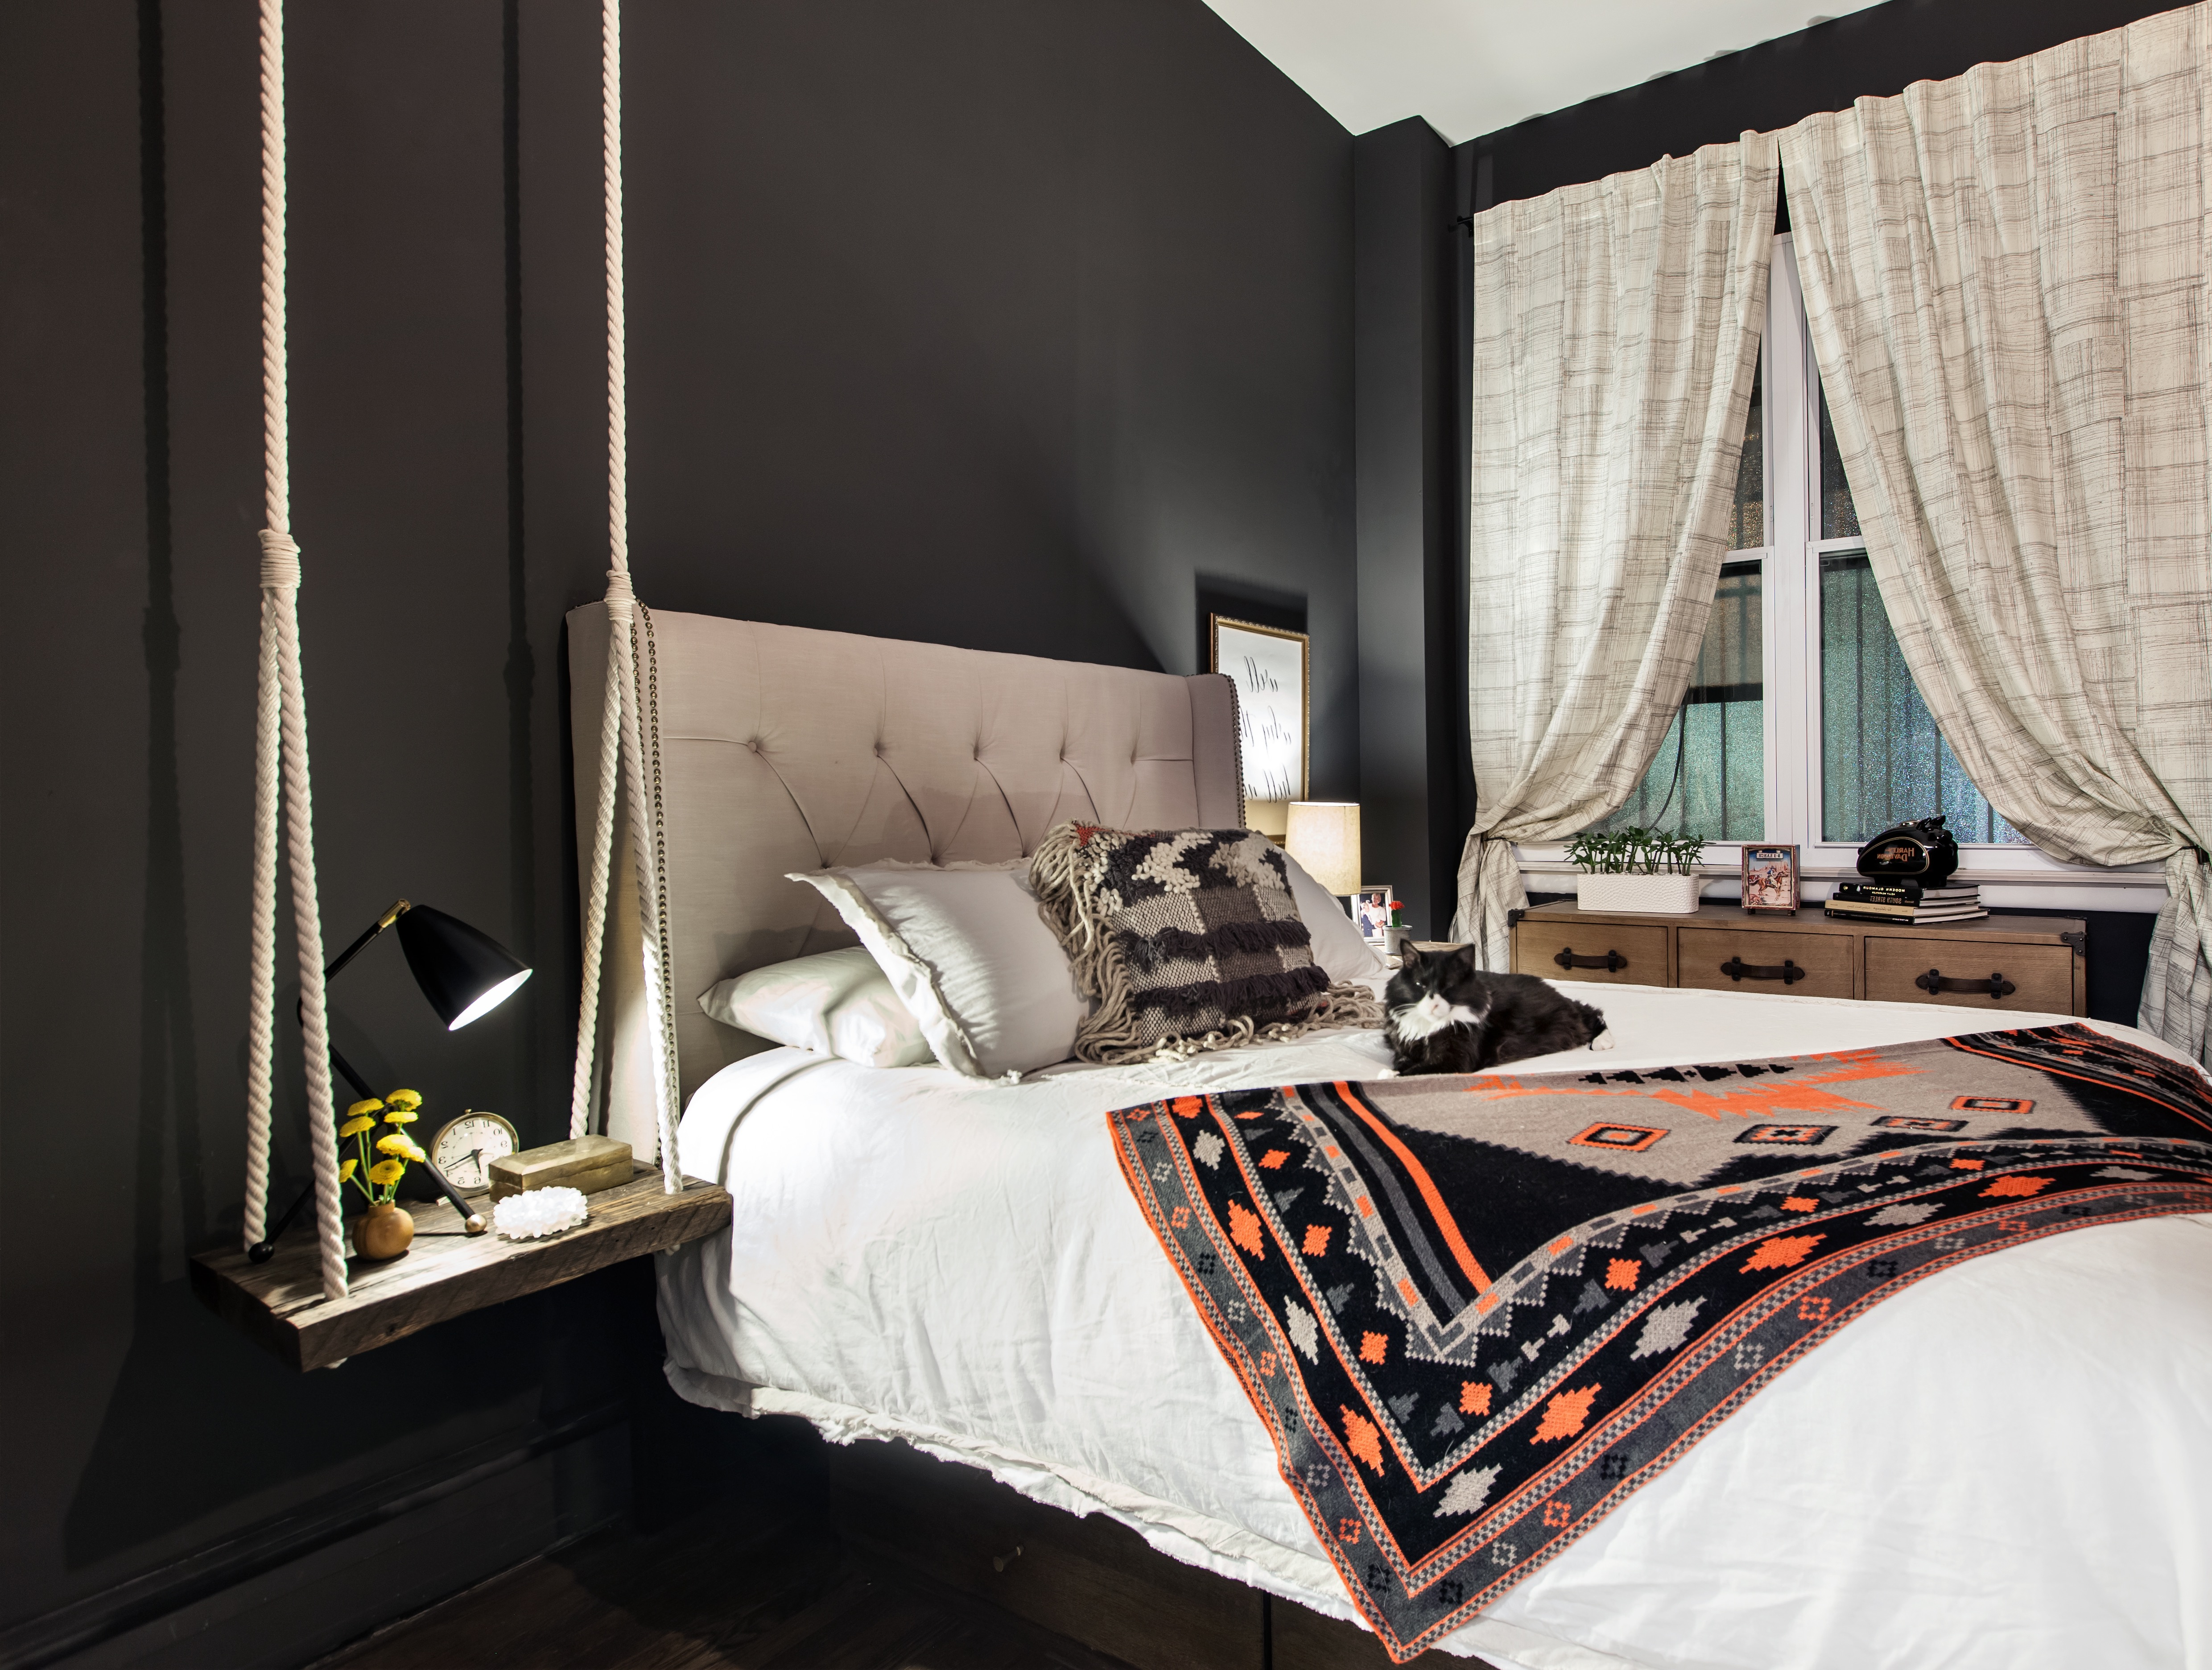 Black Gothic Bedroom With Room Saving Furnishings (Image 2 of 11)